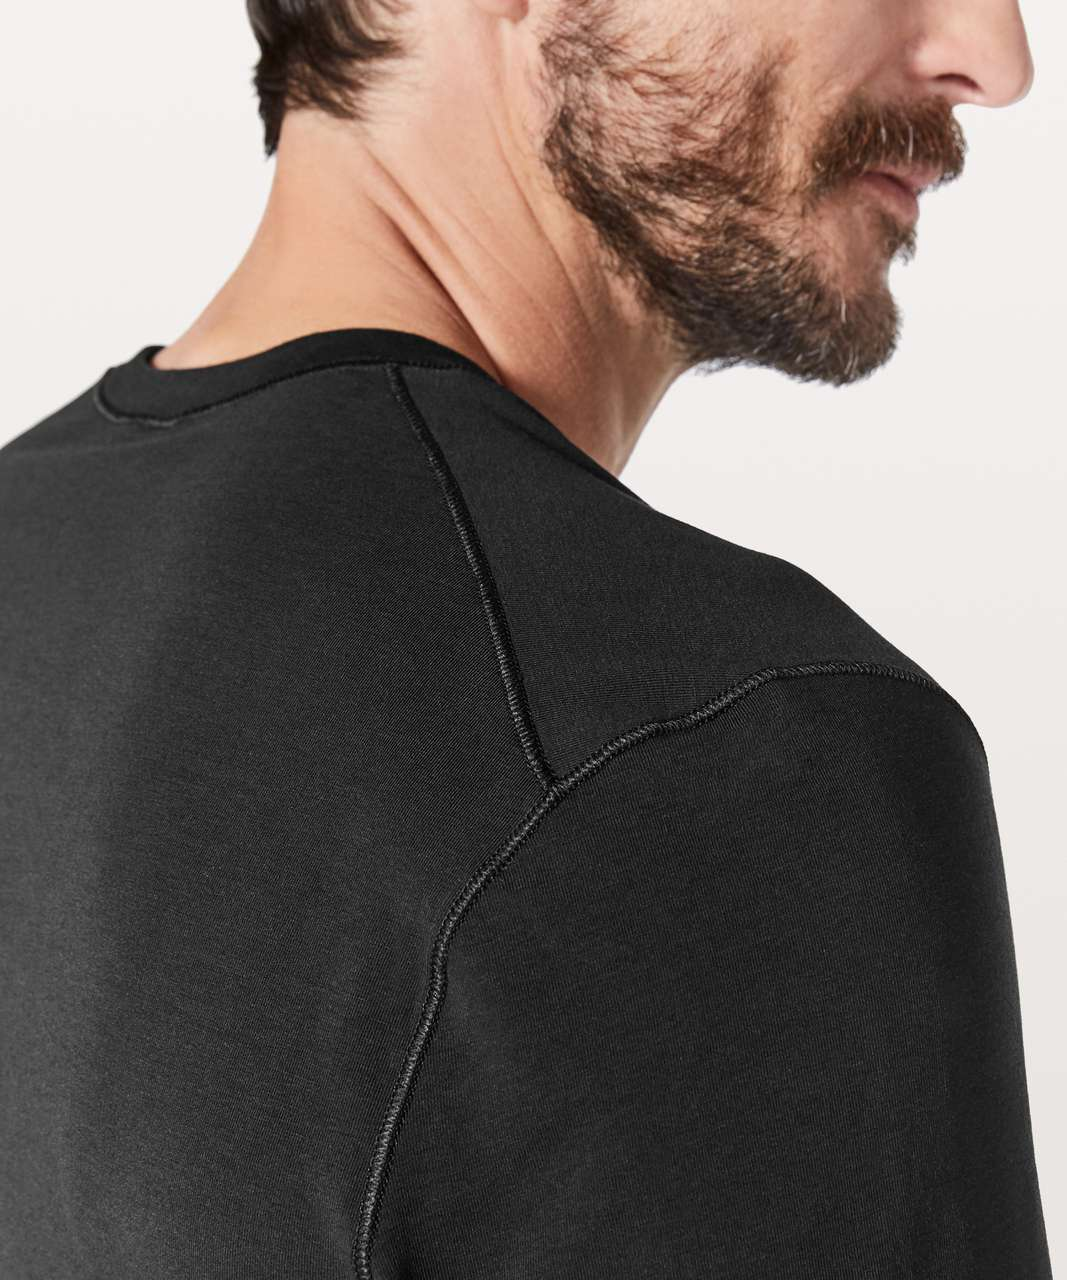 Lululemon 5 Year Basic Short Sleeve Henley - Black